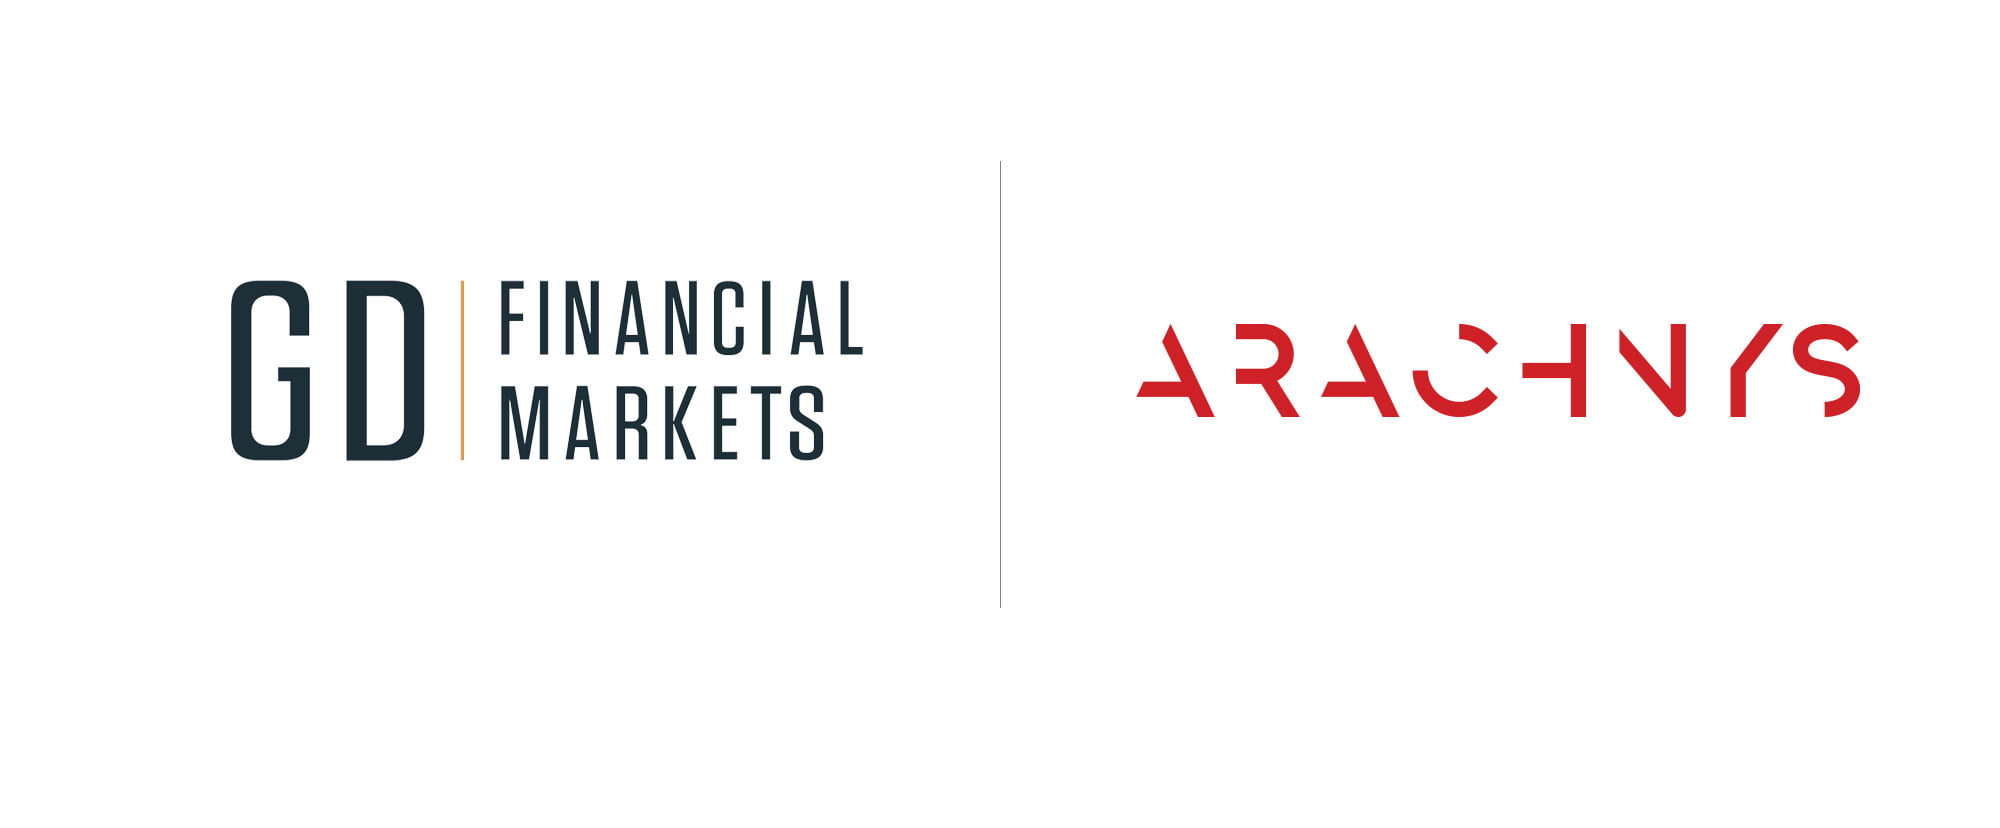 Arachnys Partner With GD Financial Markets to Accelerate KYC Remediation